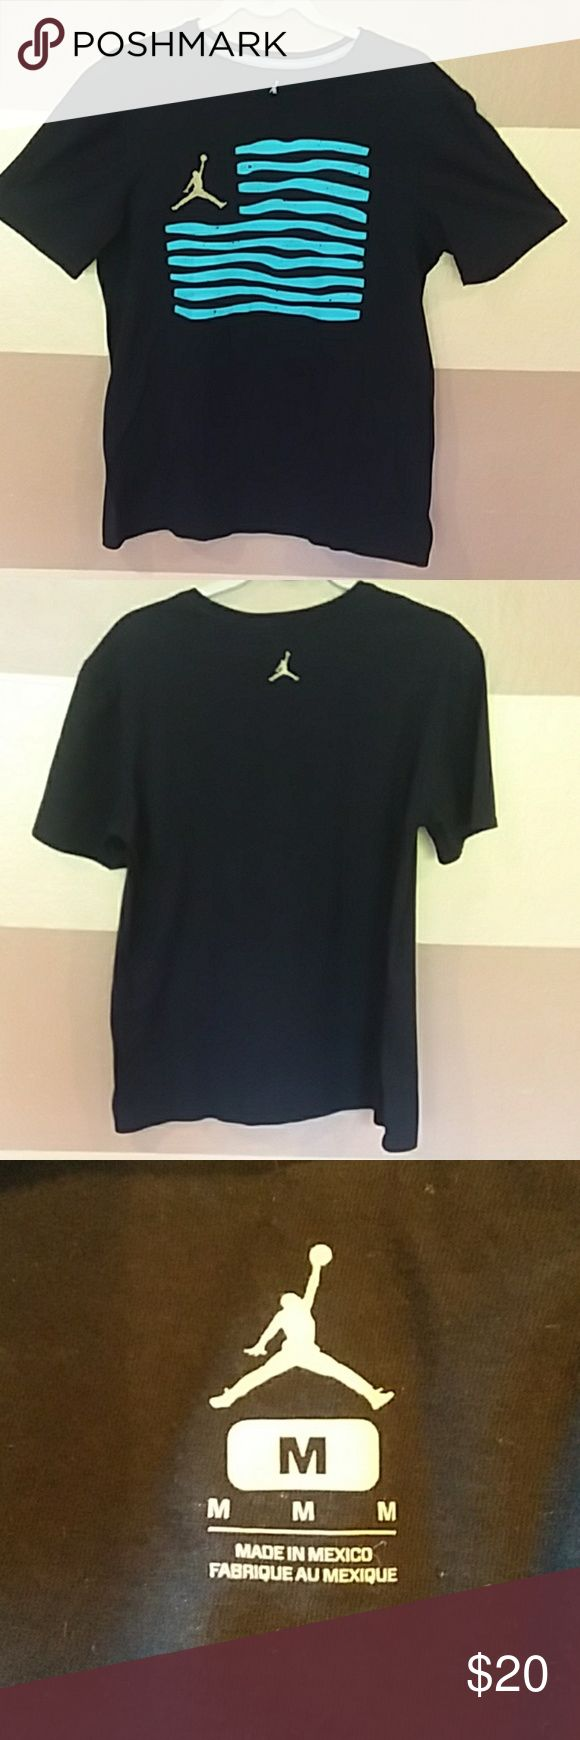 Michael Jordan T-shirt This is a like new T-shirt with nice Jordan design detail Color black with  gold Jordan emblem and teal striped across the chest. Best offer accepted Jordan Shirts Tees - Short Sleeve